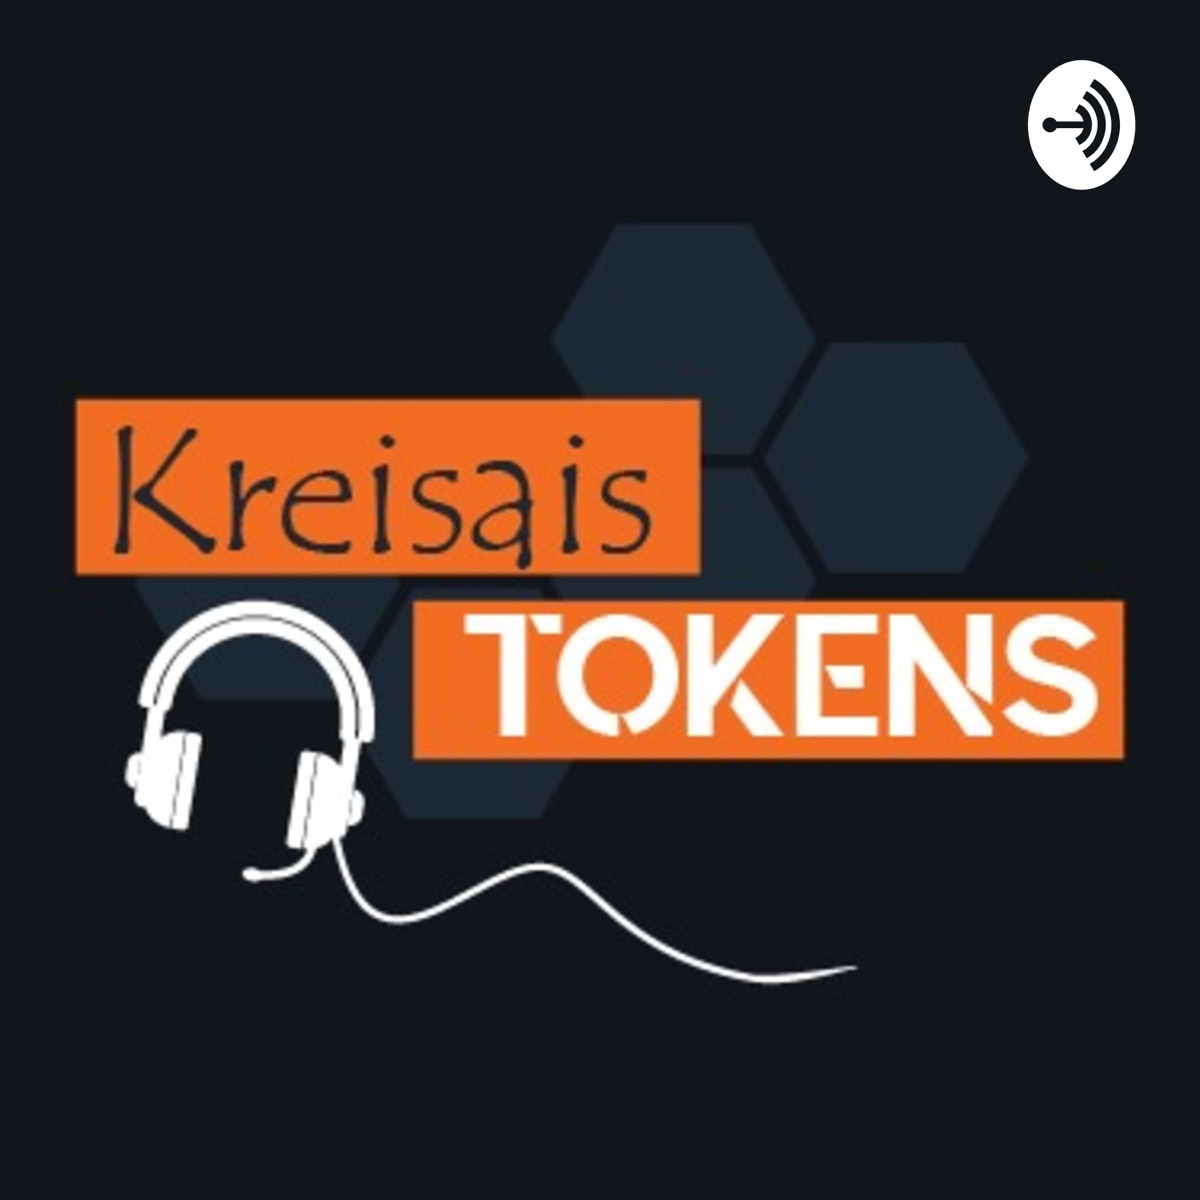 Kreisais Tokens